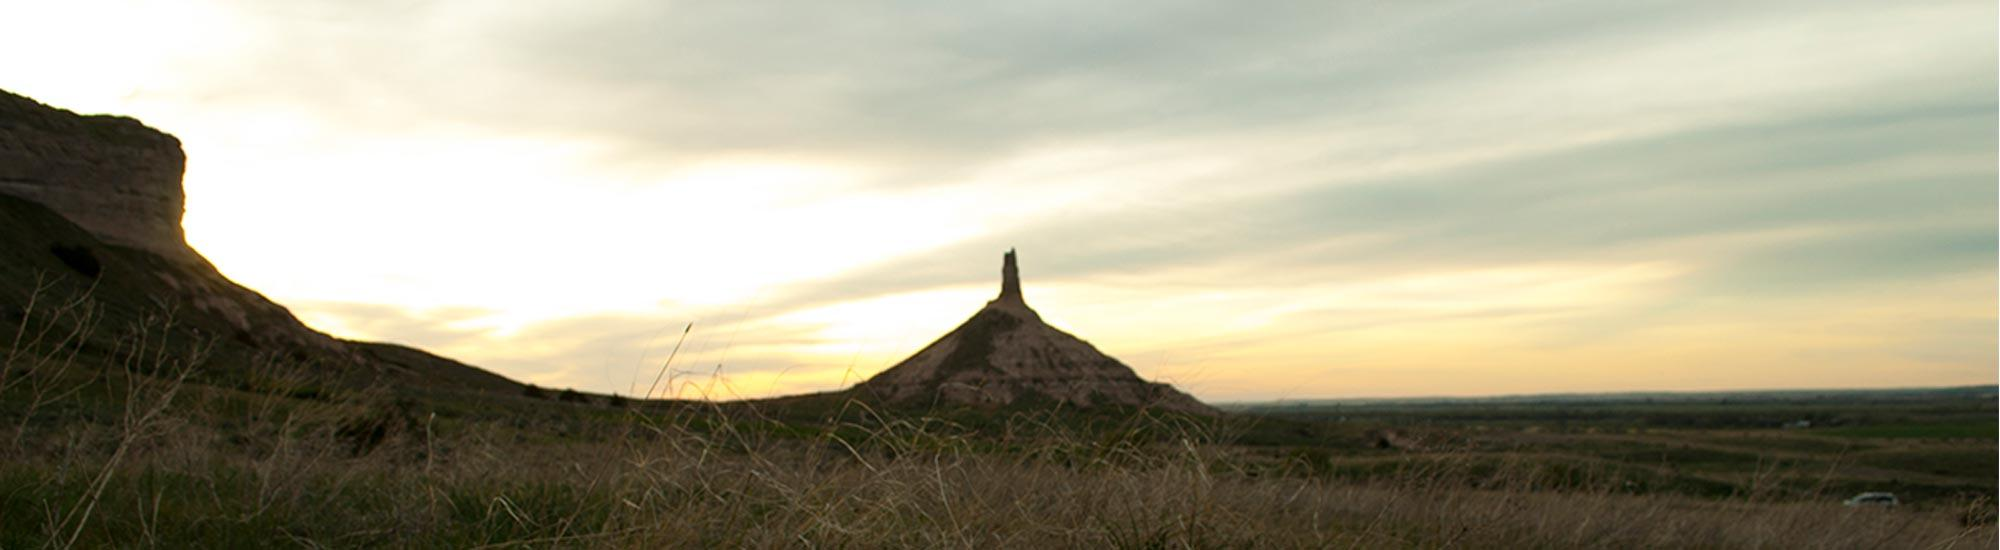 Chimney Rock at Sunset